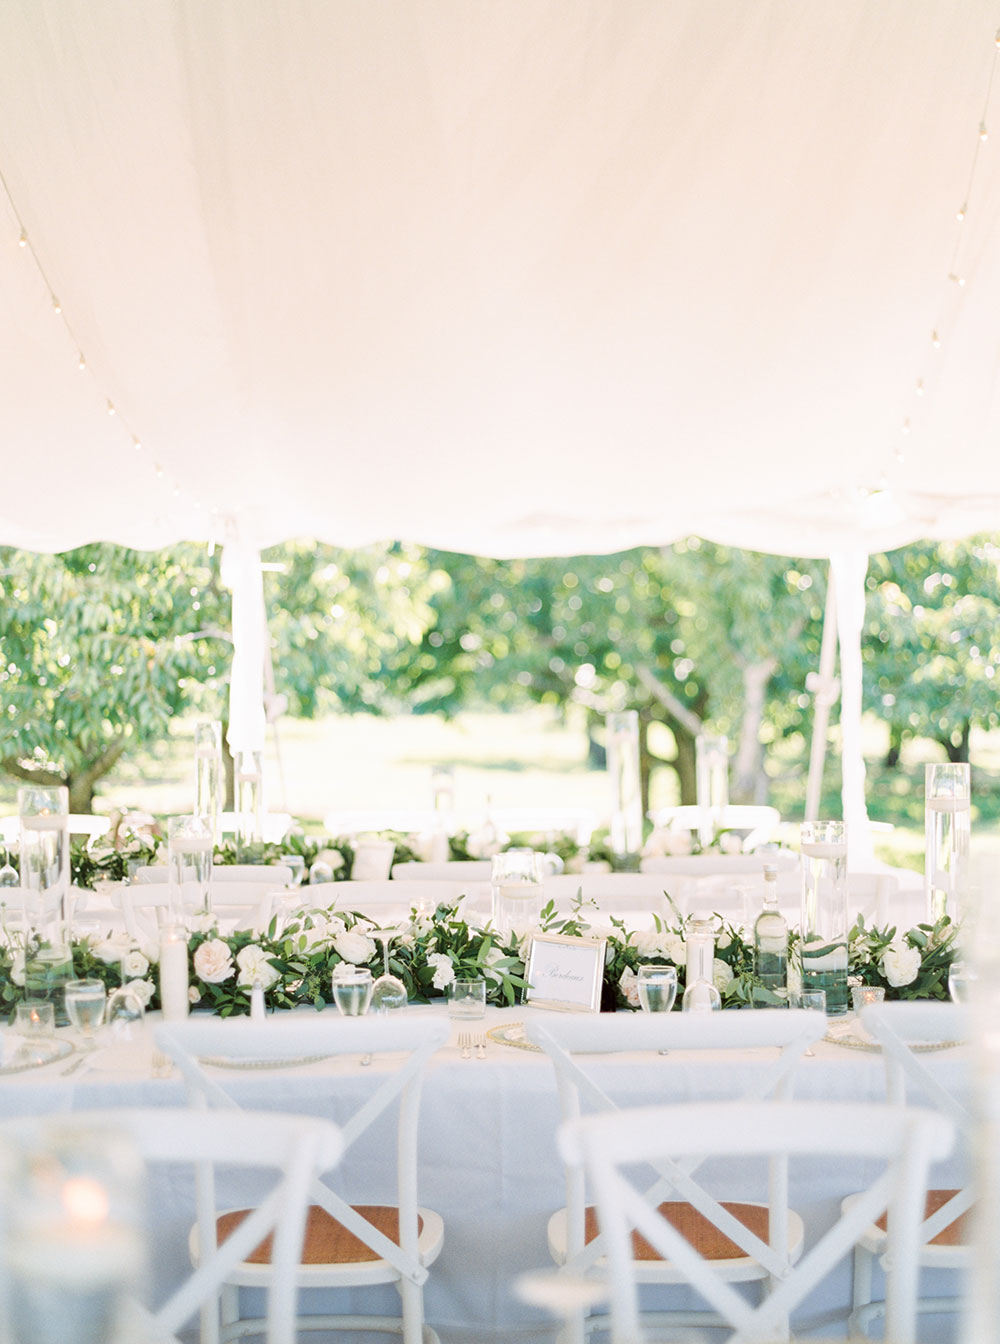 kurtz-orchards-wedding-gracewood-estate-niagara-on-the-lake-photo-by-katie-nicolle-photography-0078.JPG